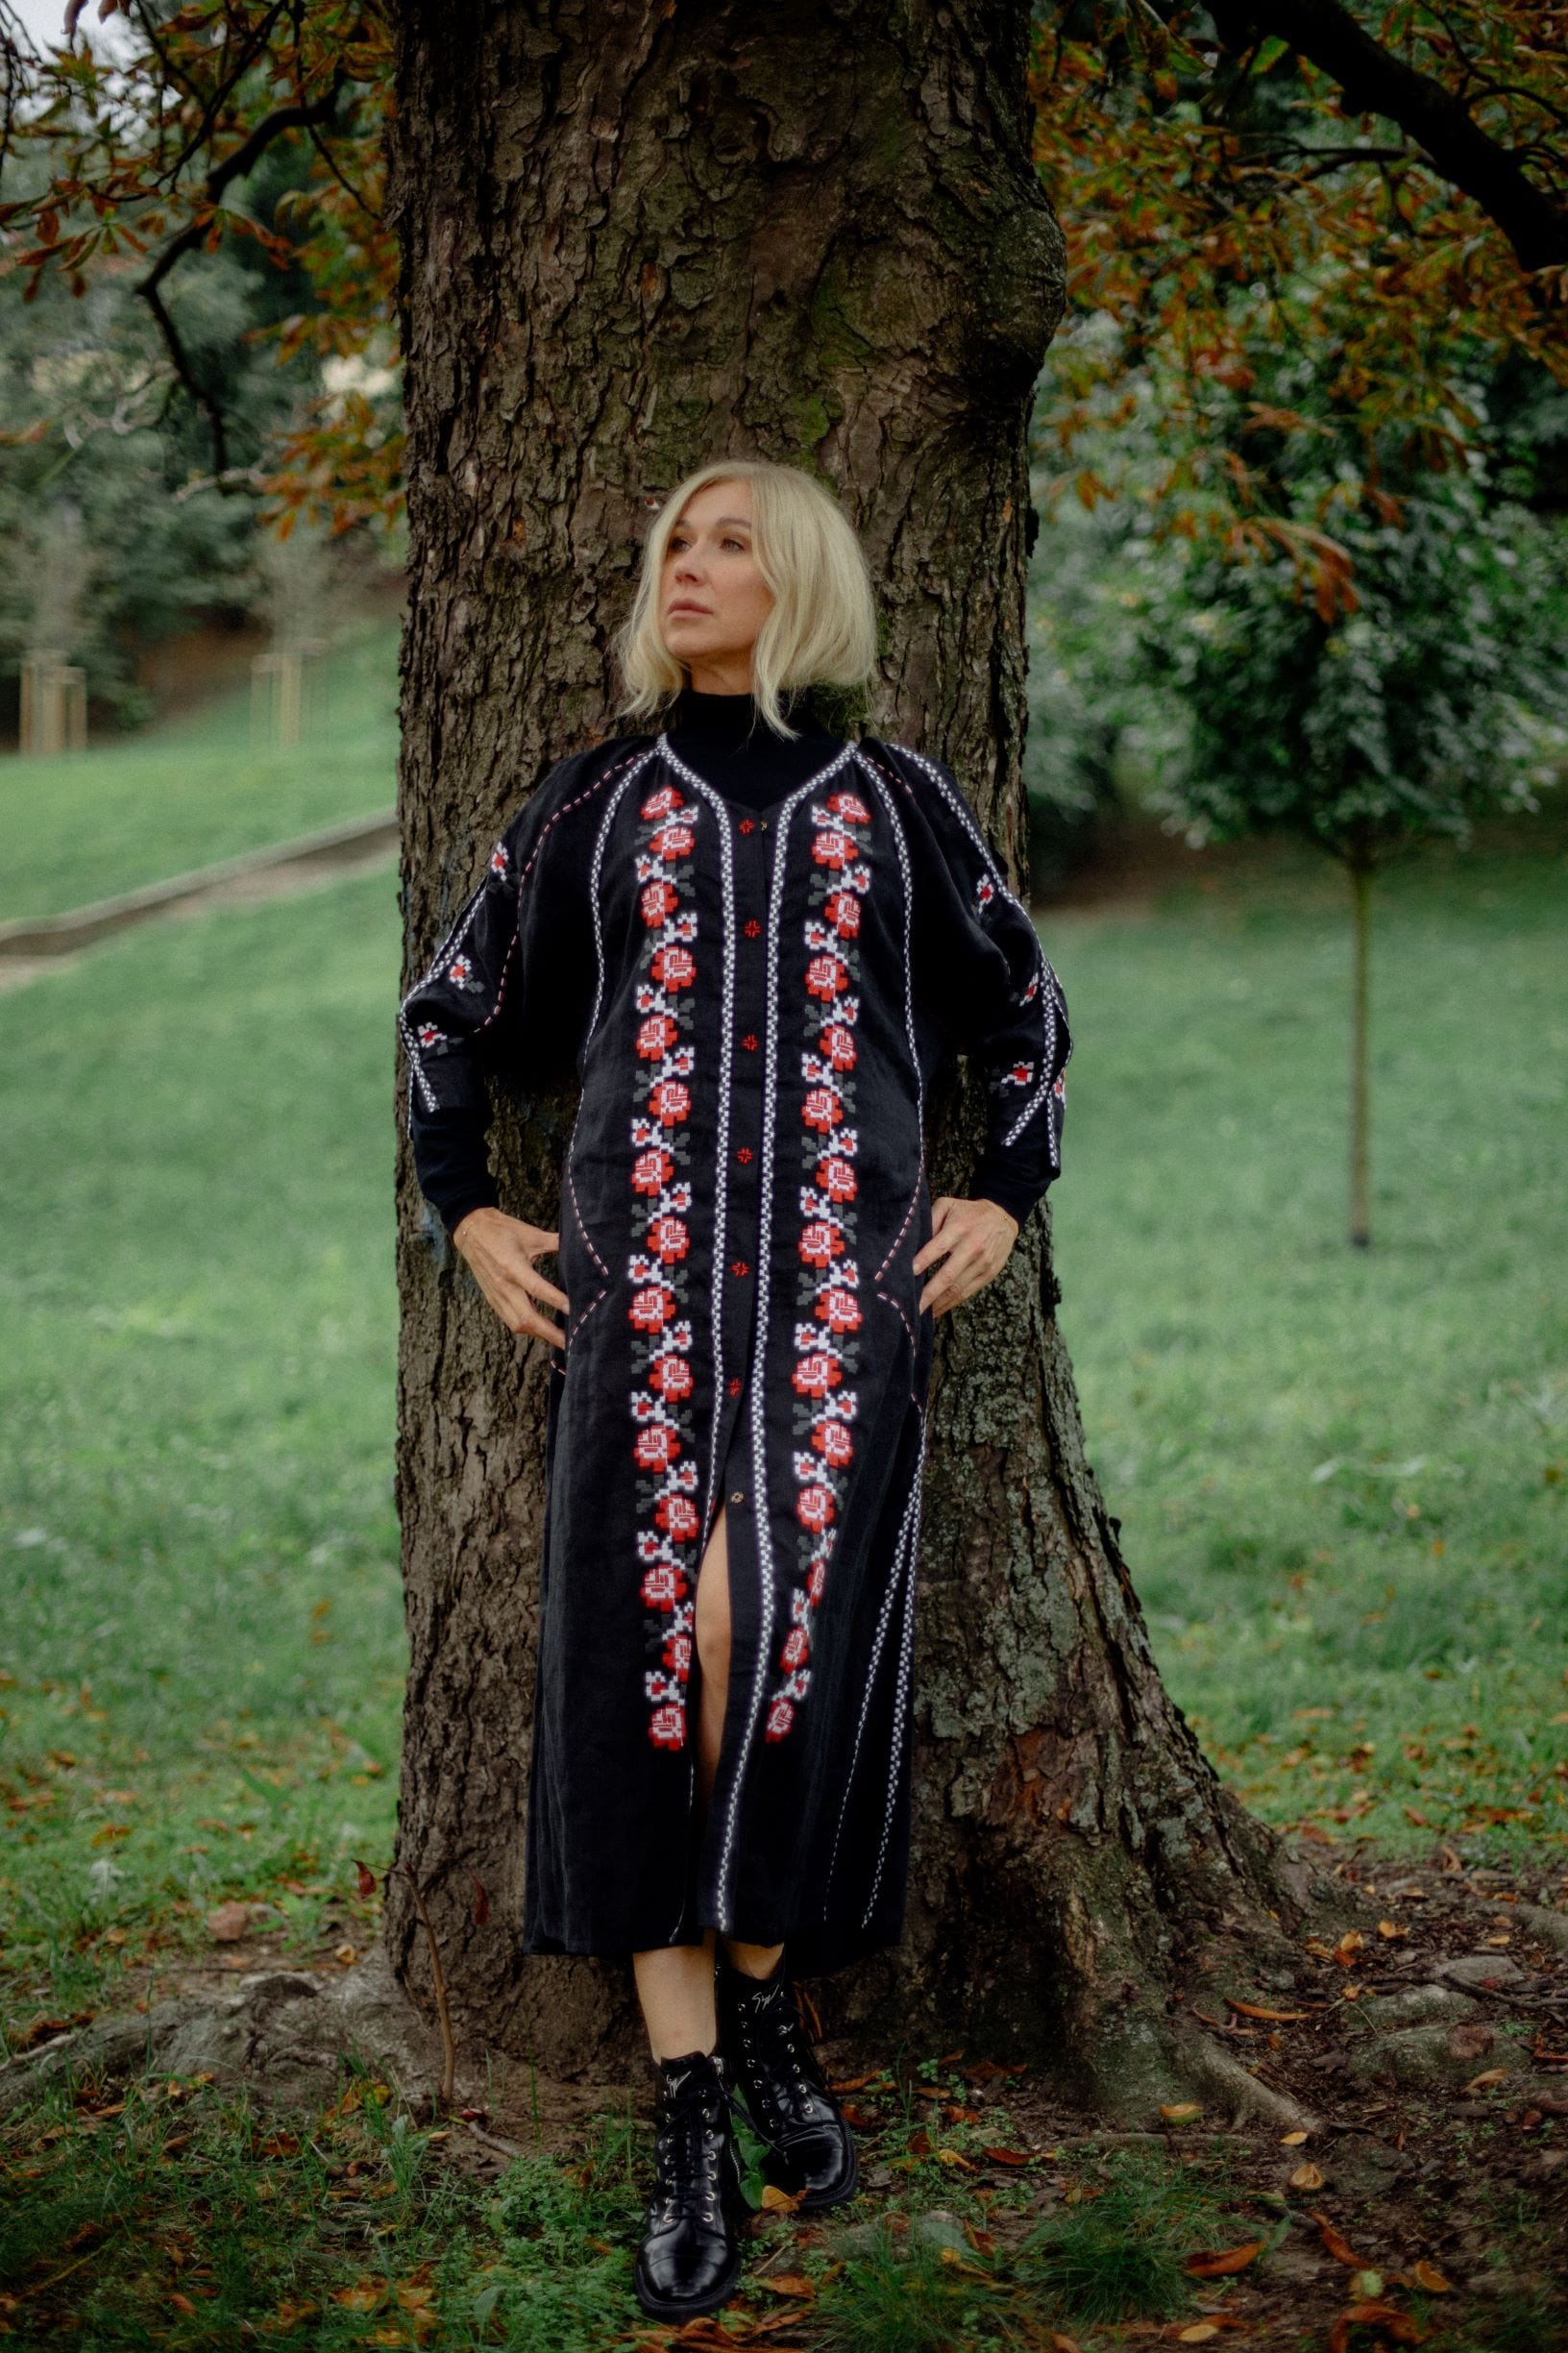 Black midi dress - My Sleeping Gypsy